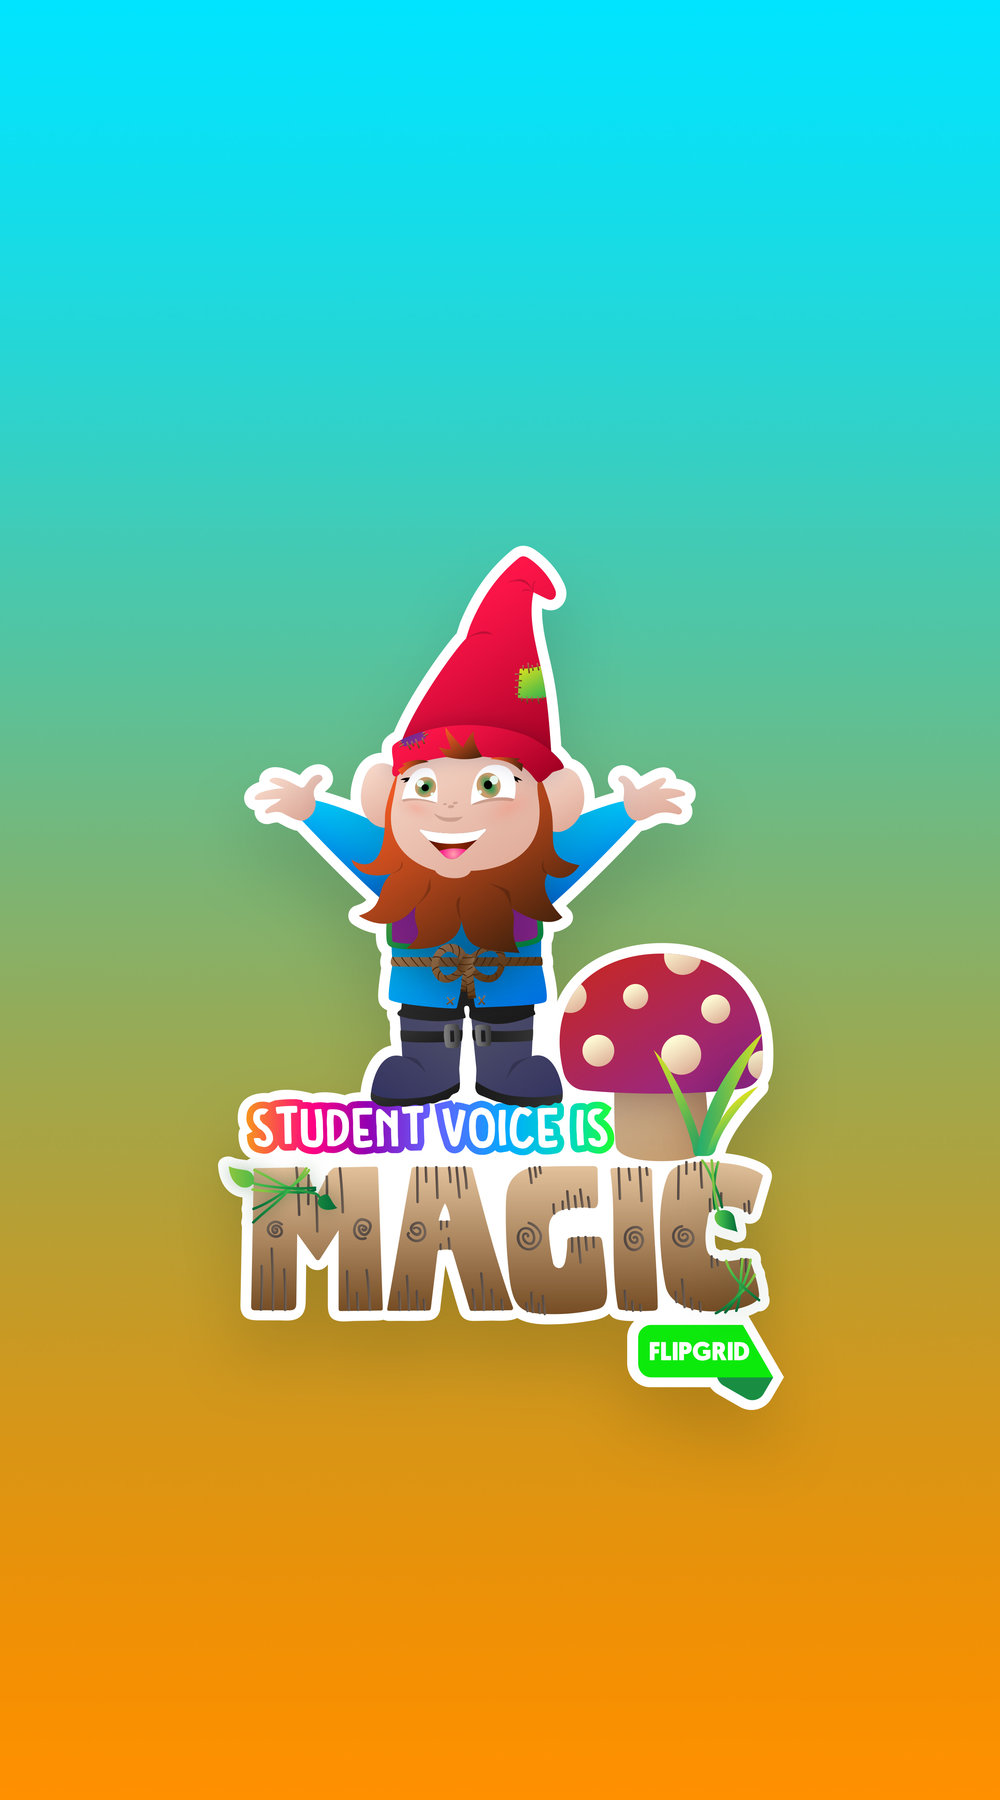 Flipgrid_Gnome_Magic_wallpaper.jpg